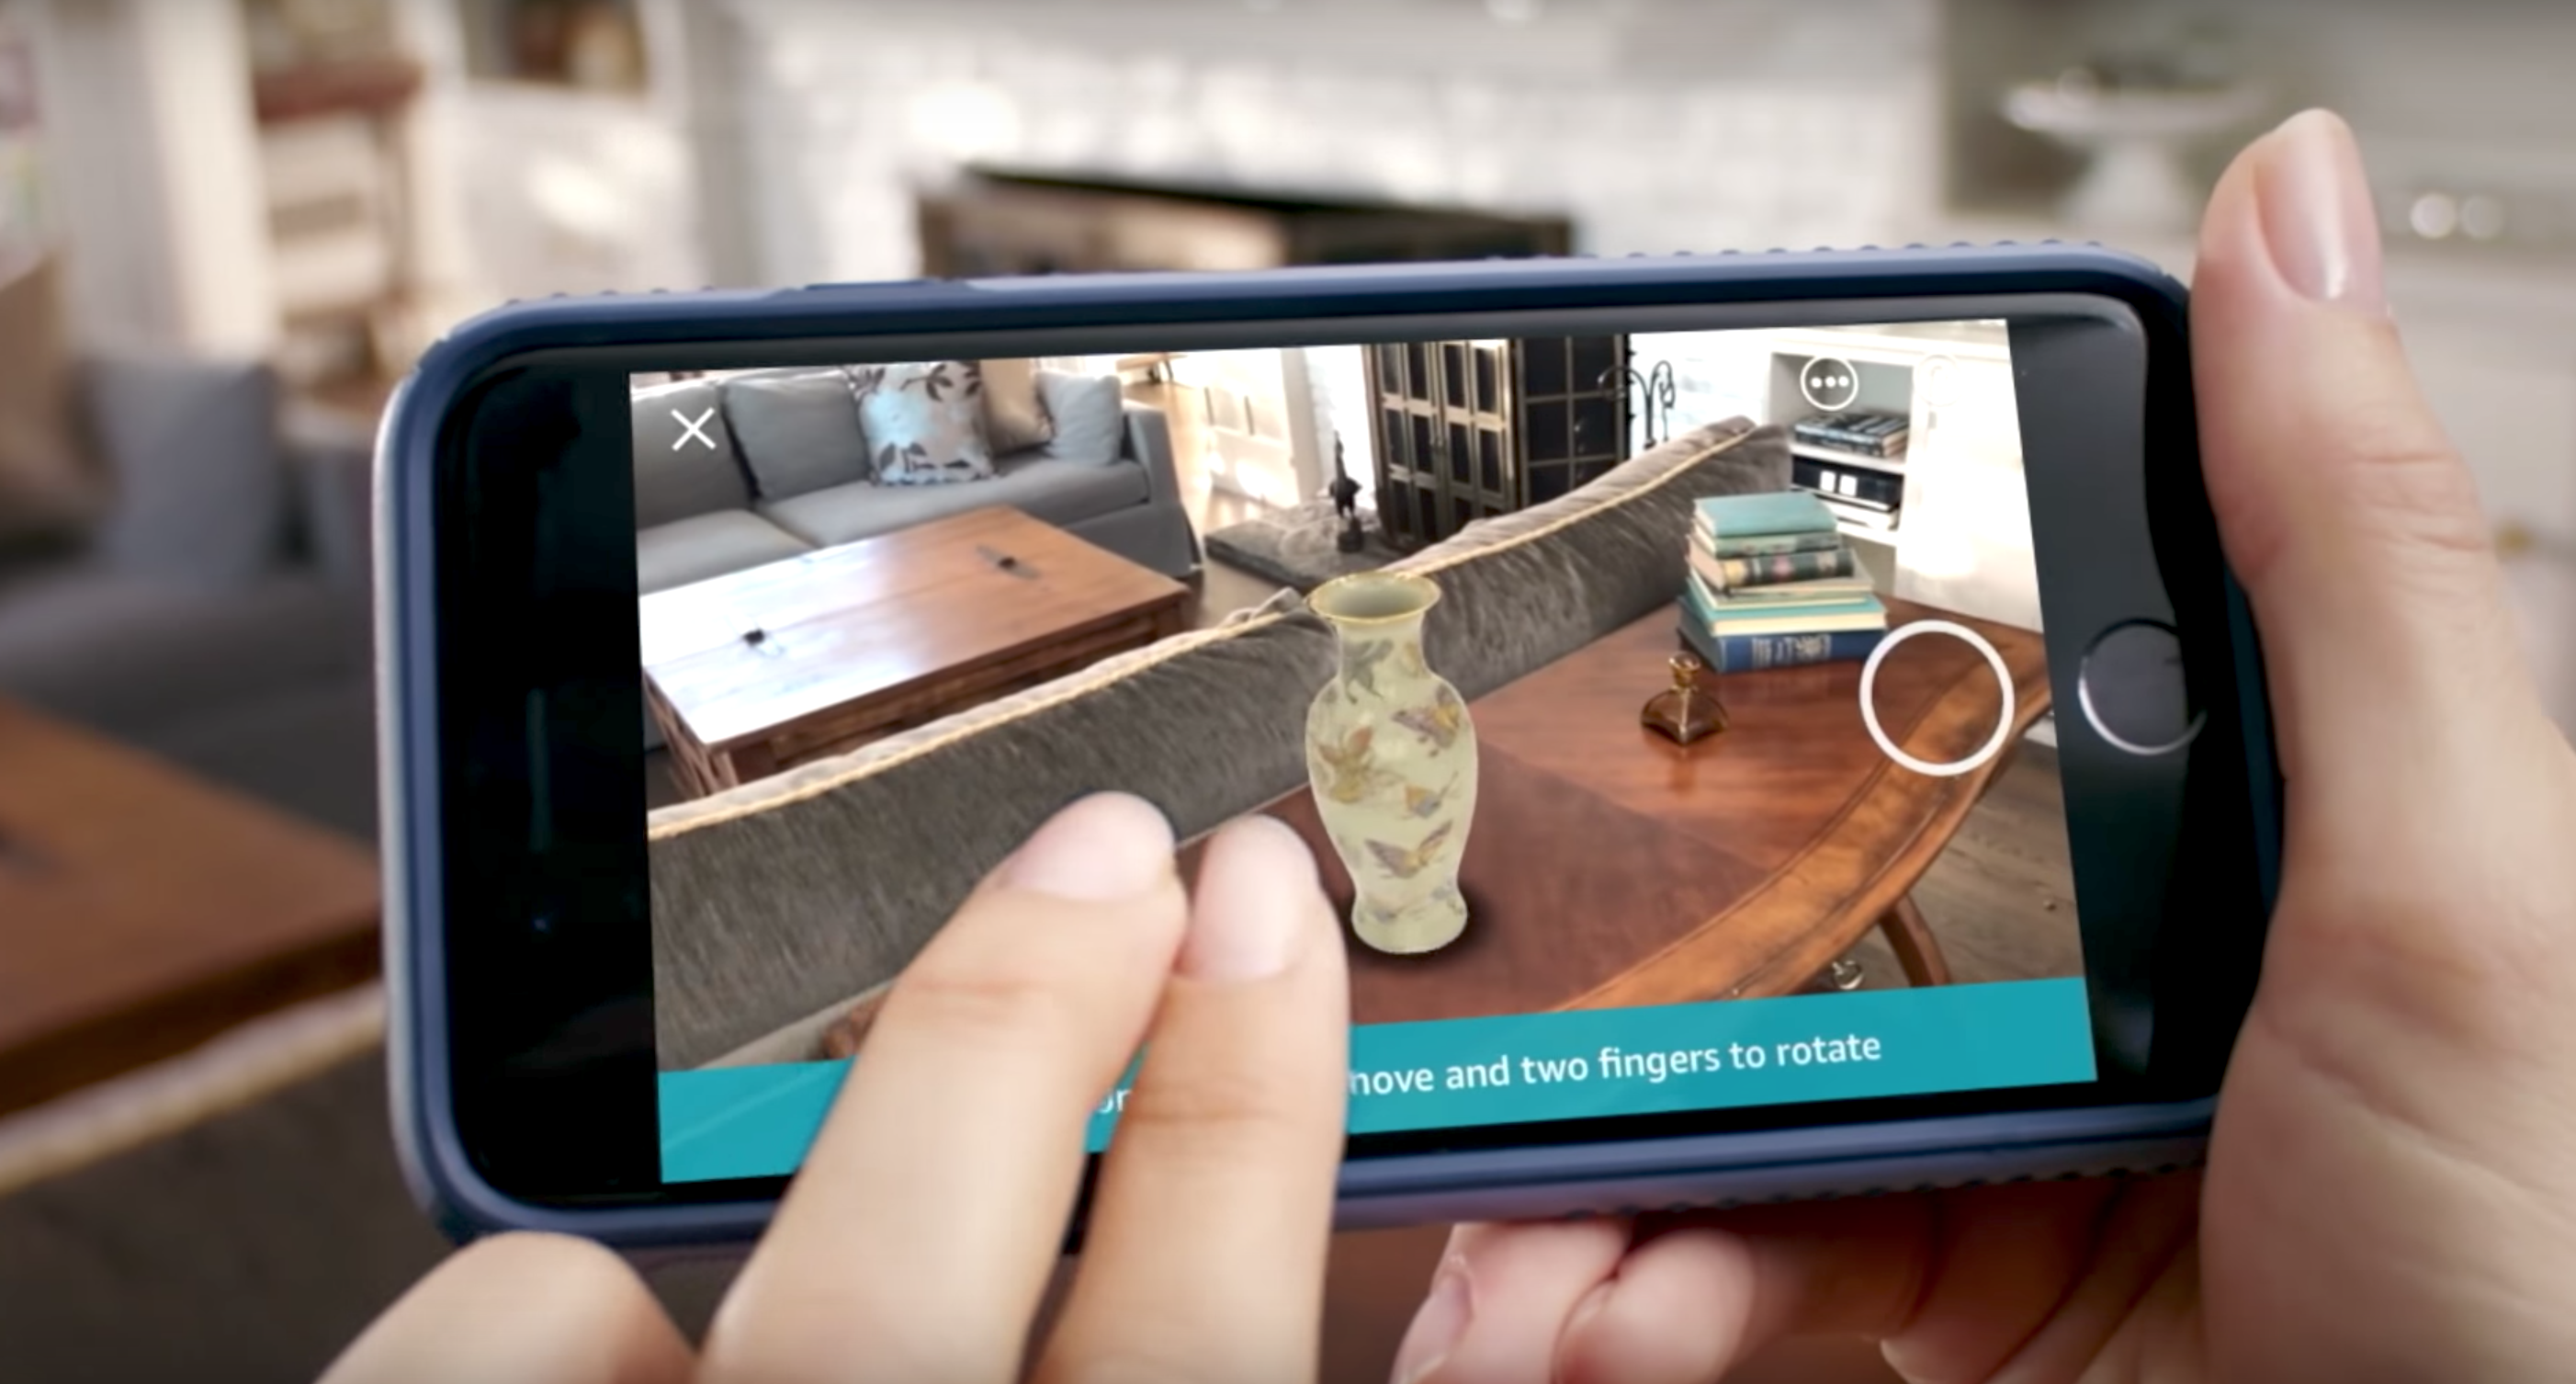 Amazon adds an AR shopping feature to its iOS app | TechCrunch